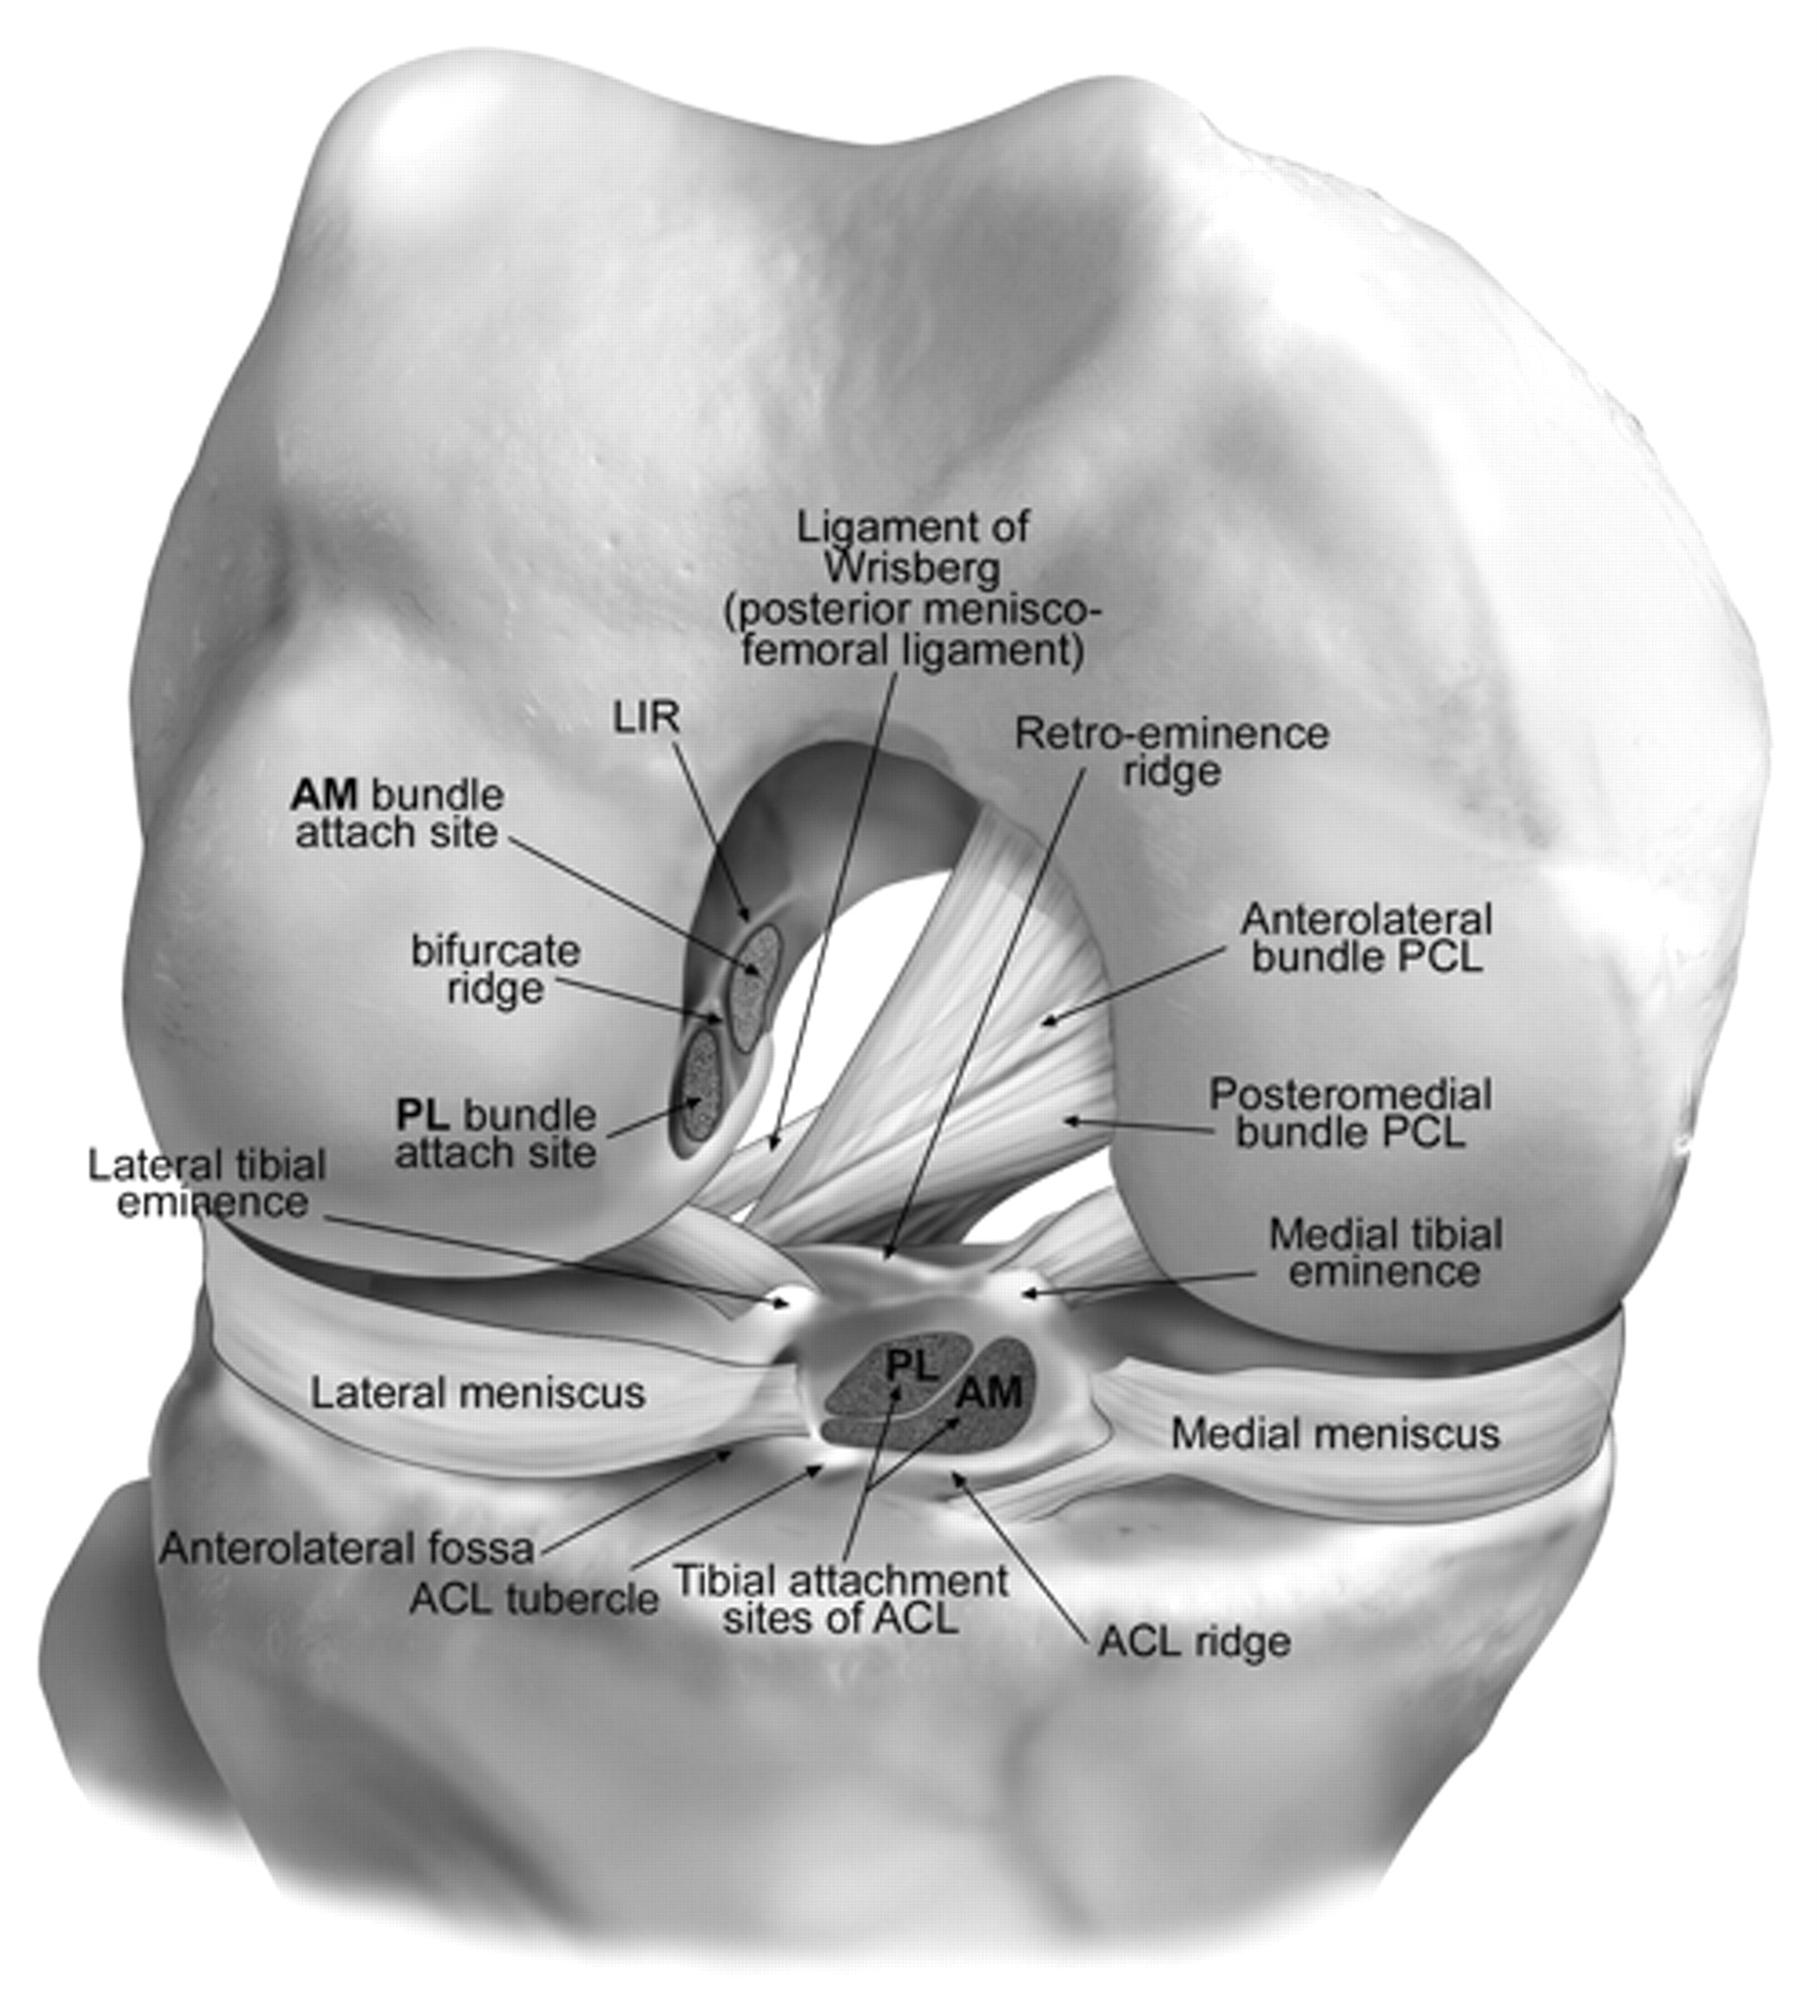 http://upload.orthobullets.com/topic/3001/images/acl anterior view knee diagram.jpg